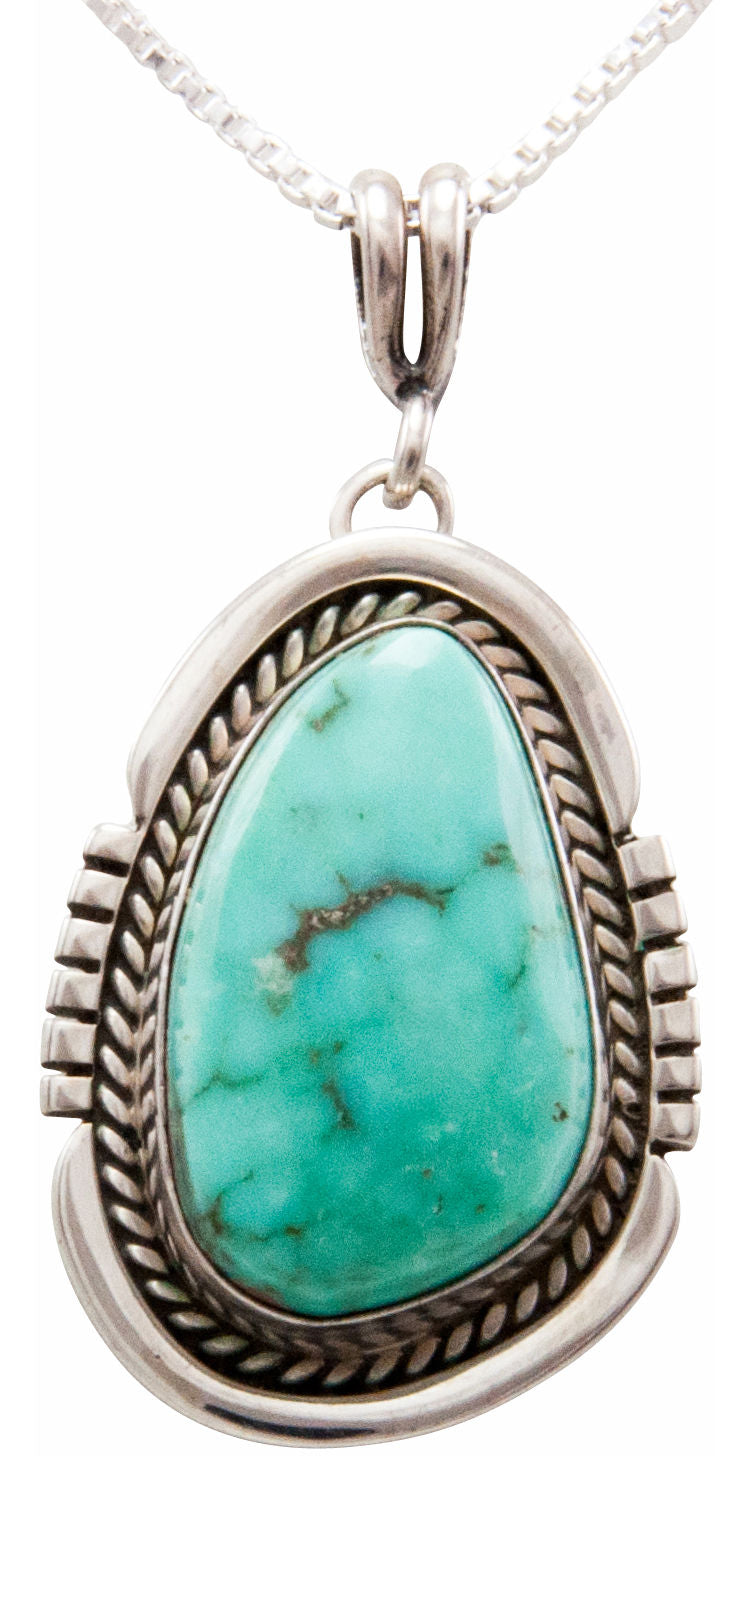 Navajo Native American Royston Turquoise Pendant Necklace by Platero SKU232487